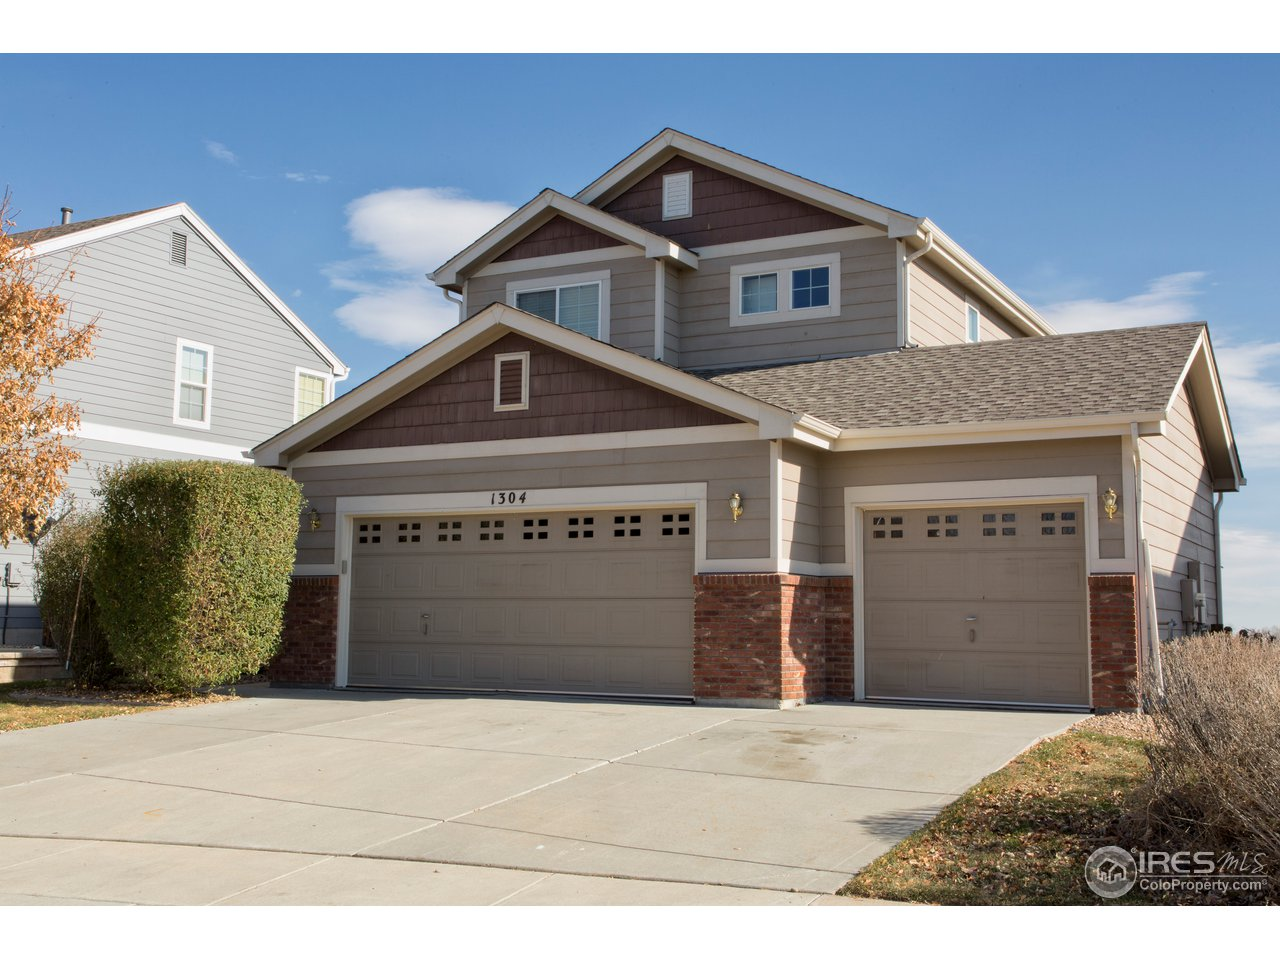 1304 101st Ave Ct, Greeley CO 80634